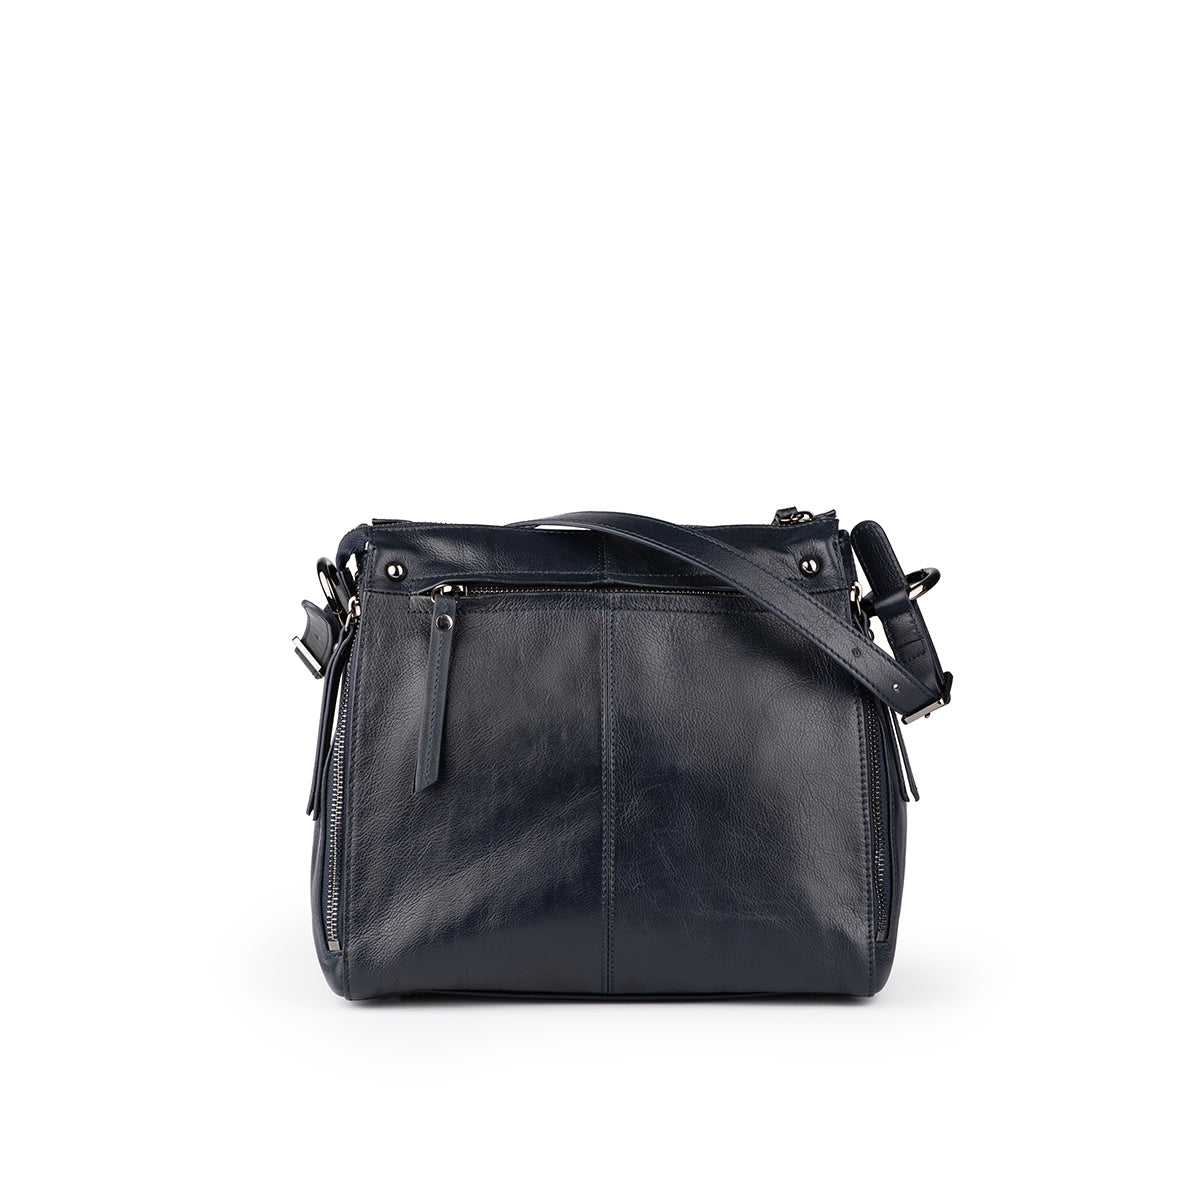 4-Zipper Leather Bag